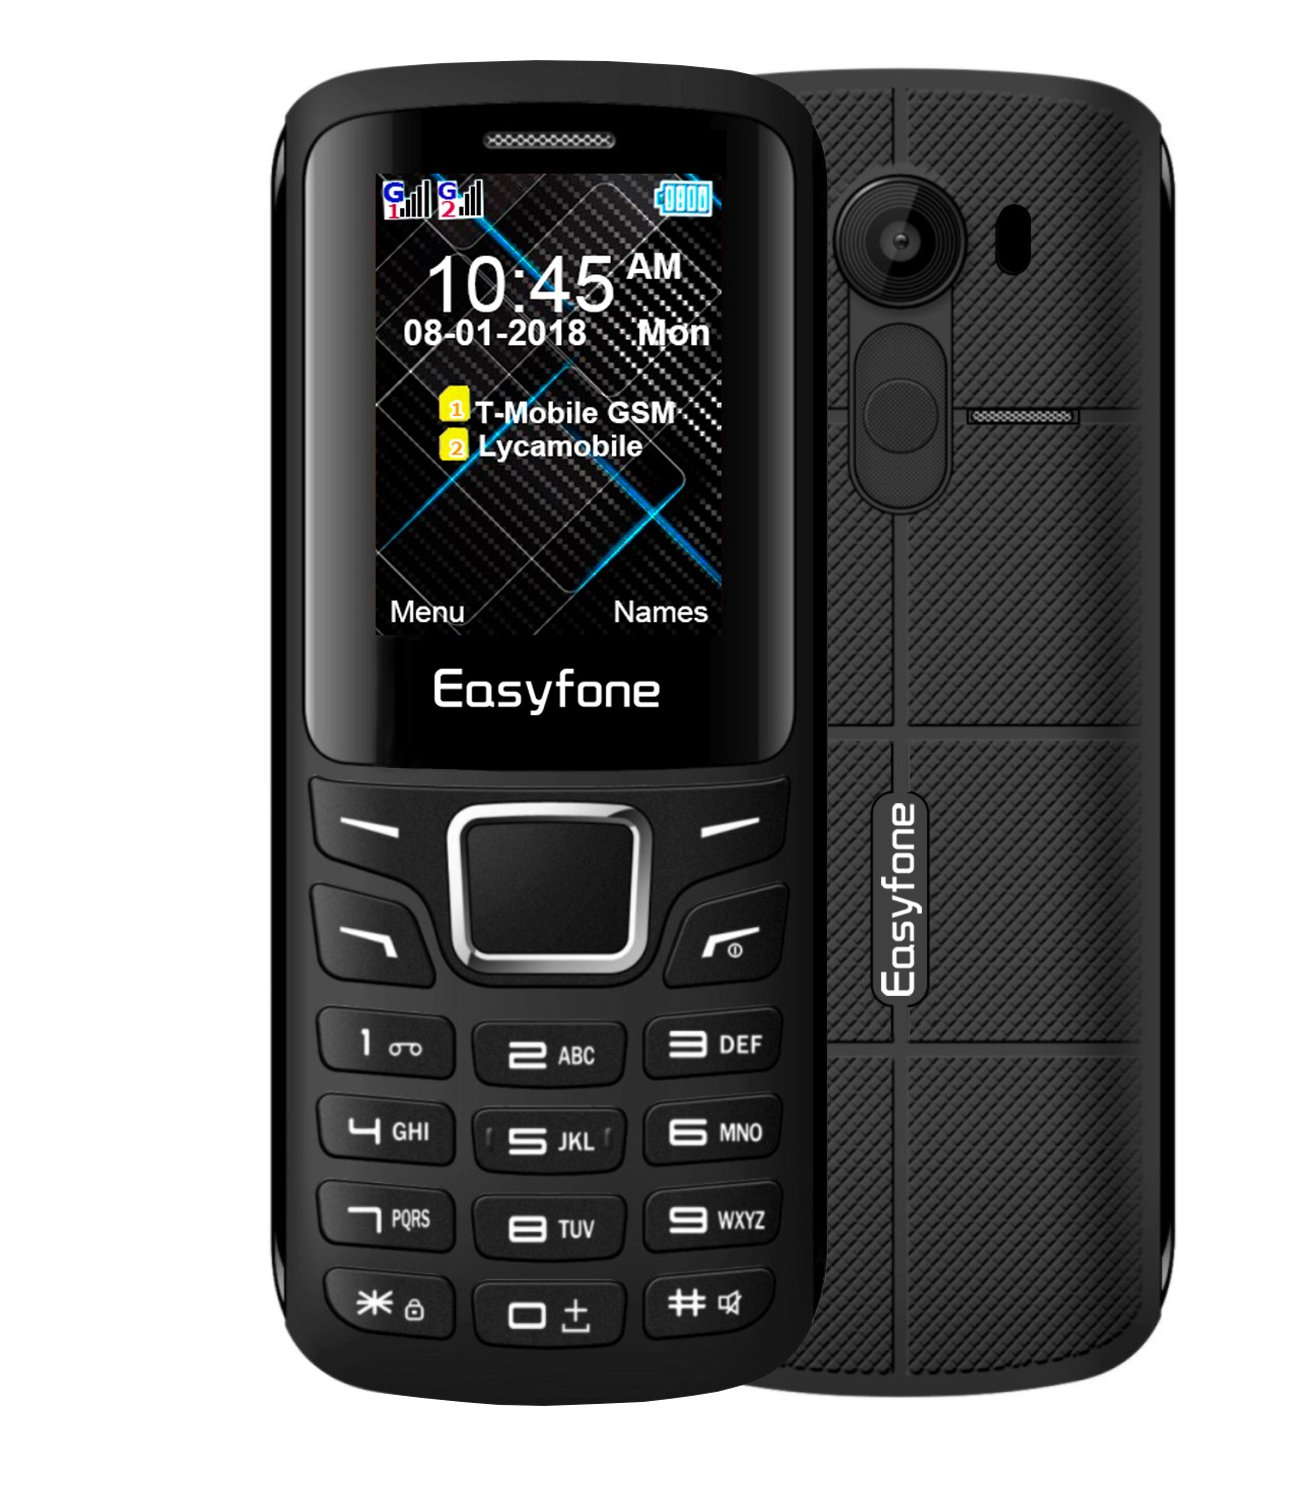 Easyfone Joy-X Dual-SIM Unlocked GSM Cell Phone, VGA-Camera with Color Screen and High-intensity Curved TP Glass, SIM-Free GSM Quad-Bands Worldwide Cell Phone with Bluetooth and MicroSD Card Slot